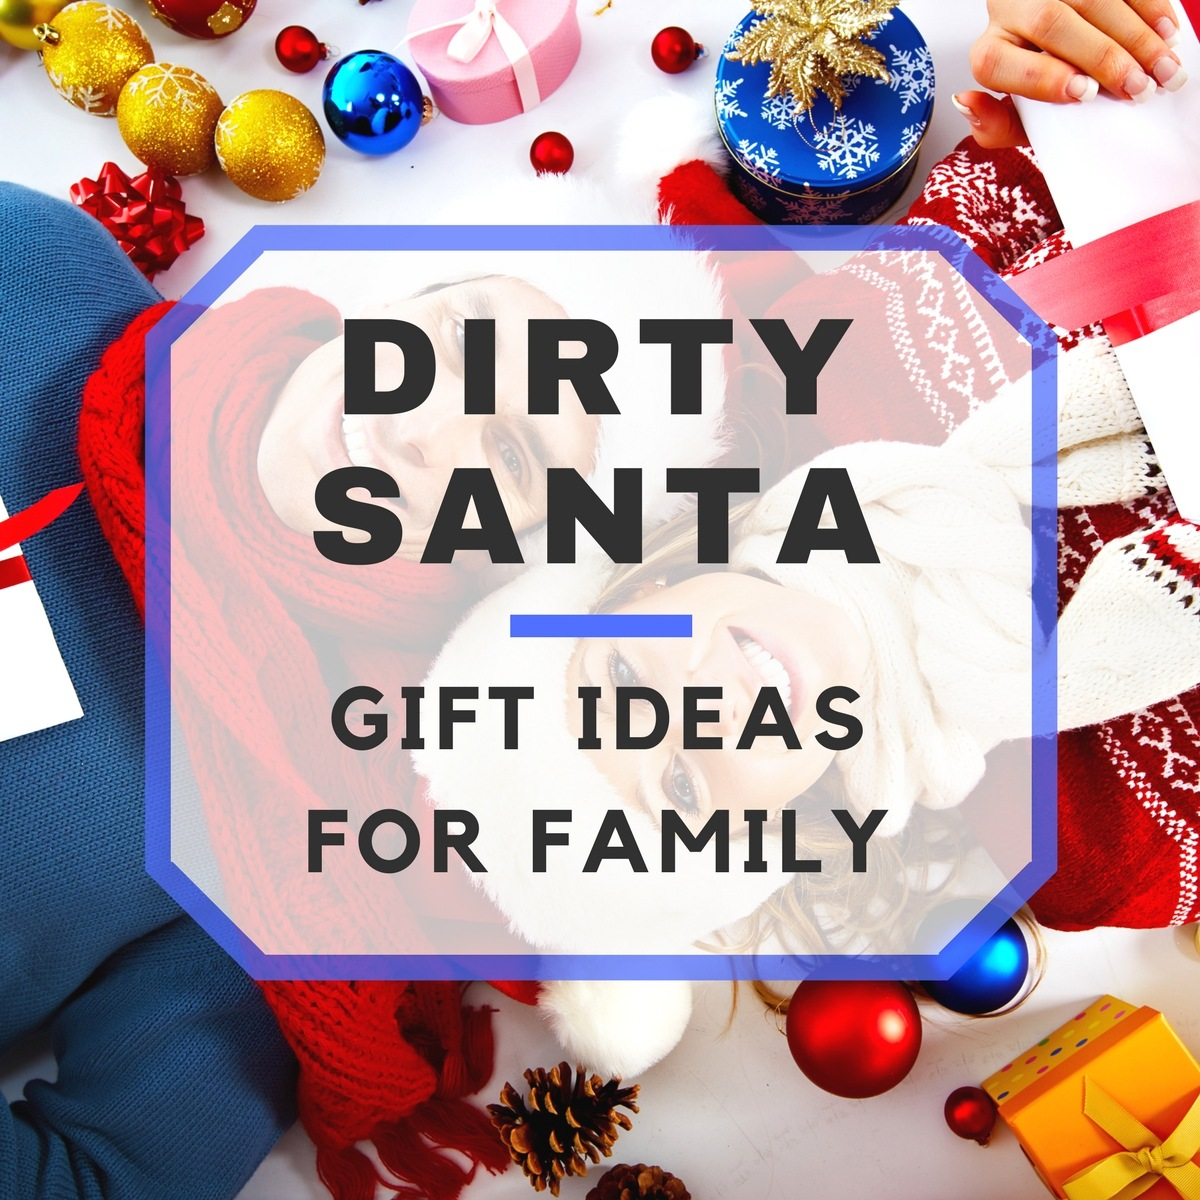 15 dirty santa gift ideas for family - Cheap Christmas Gifts For Family